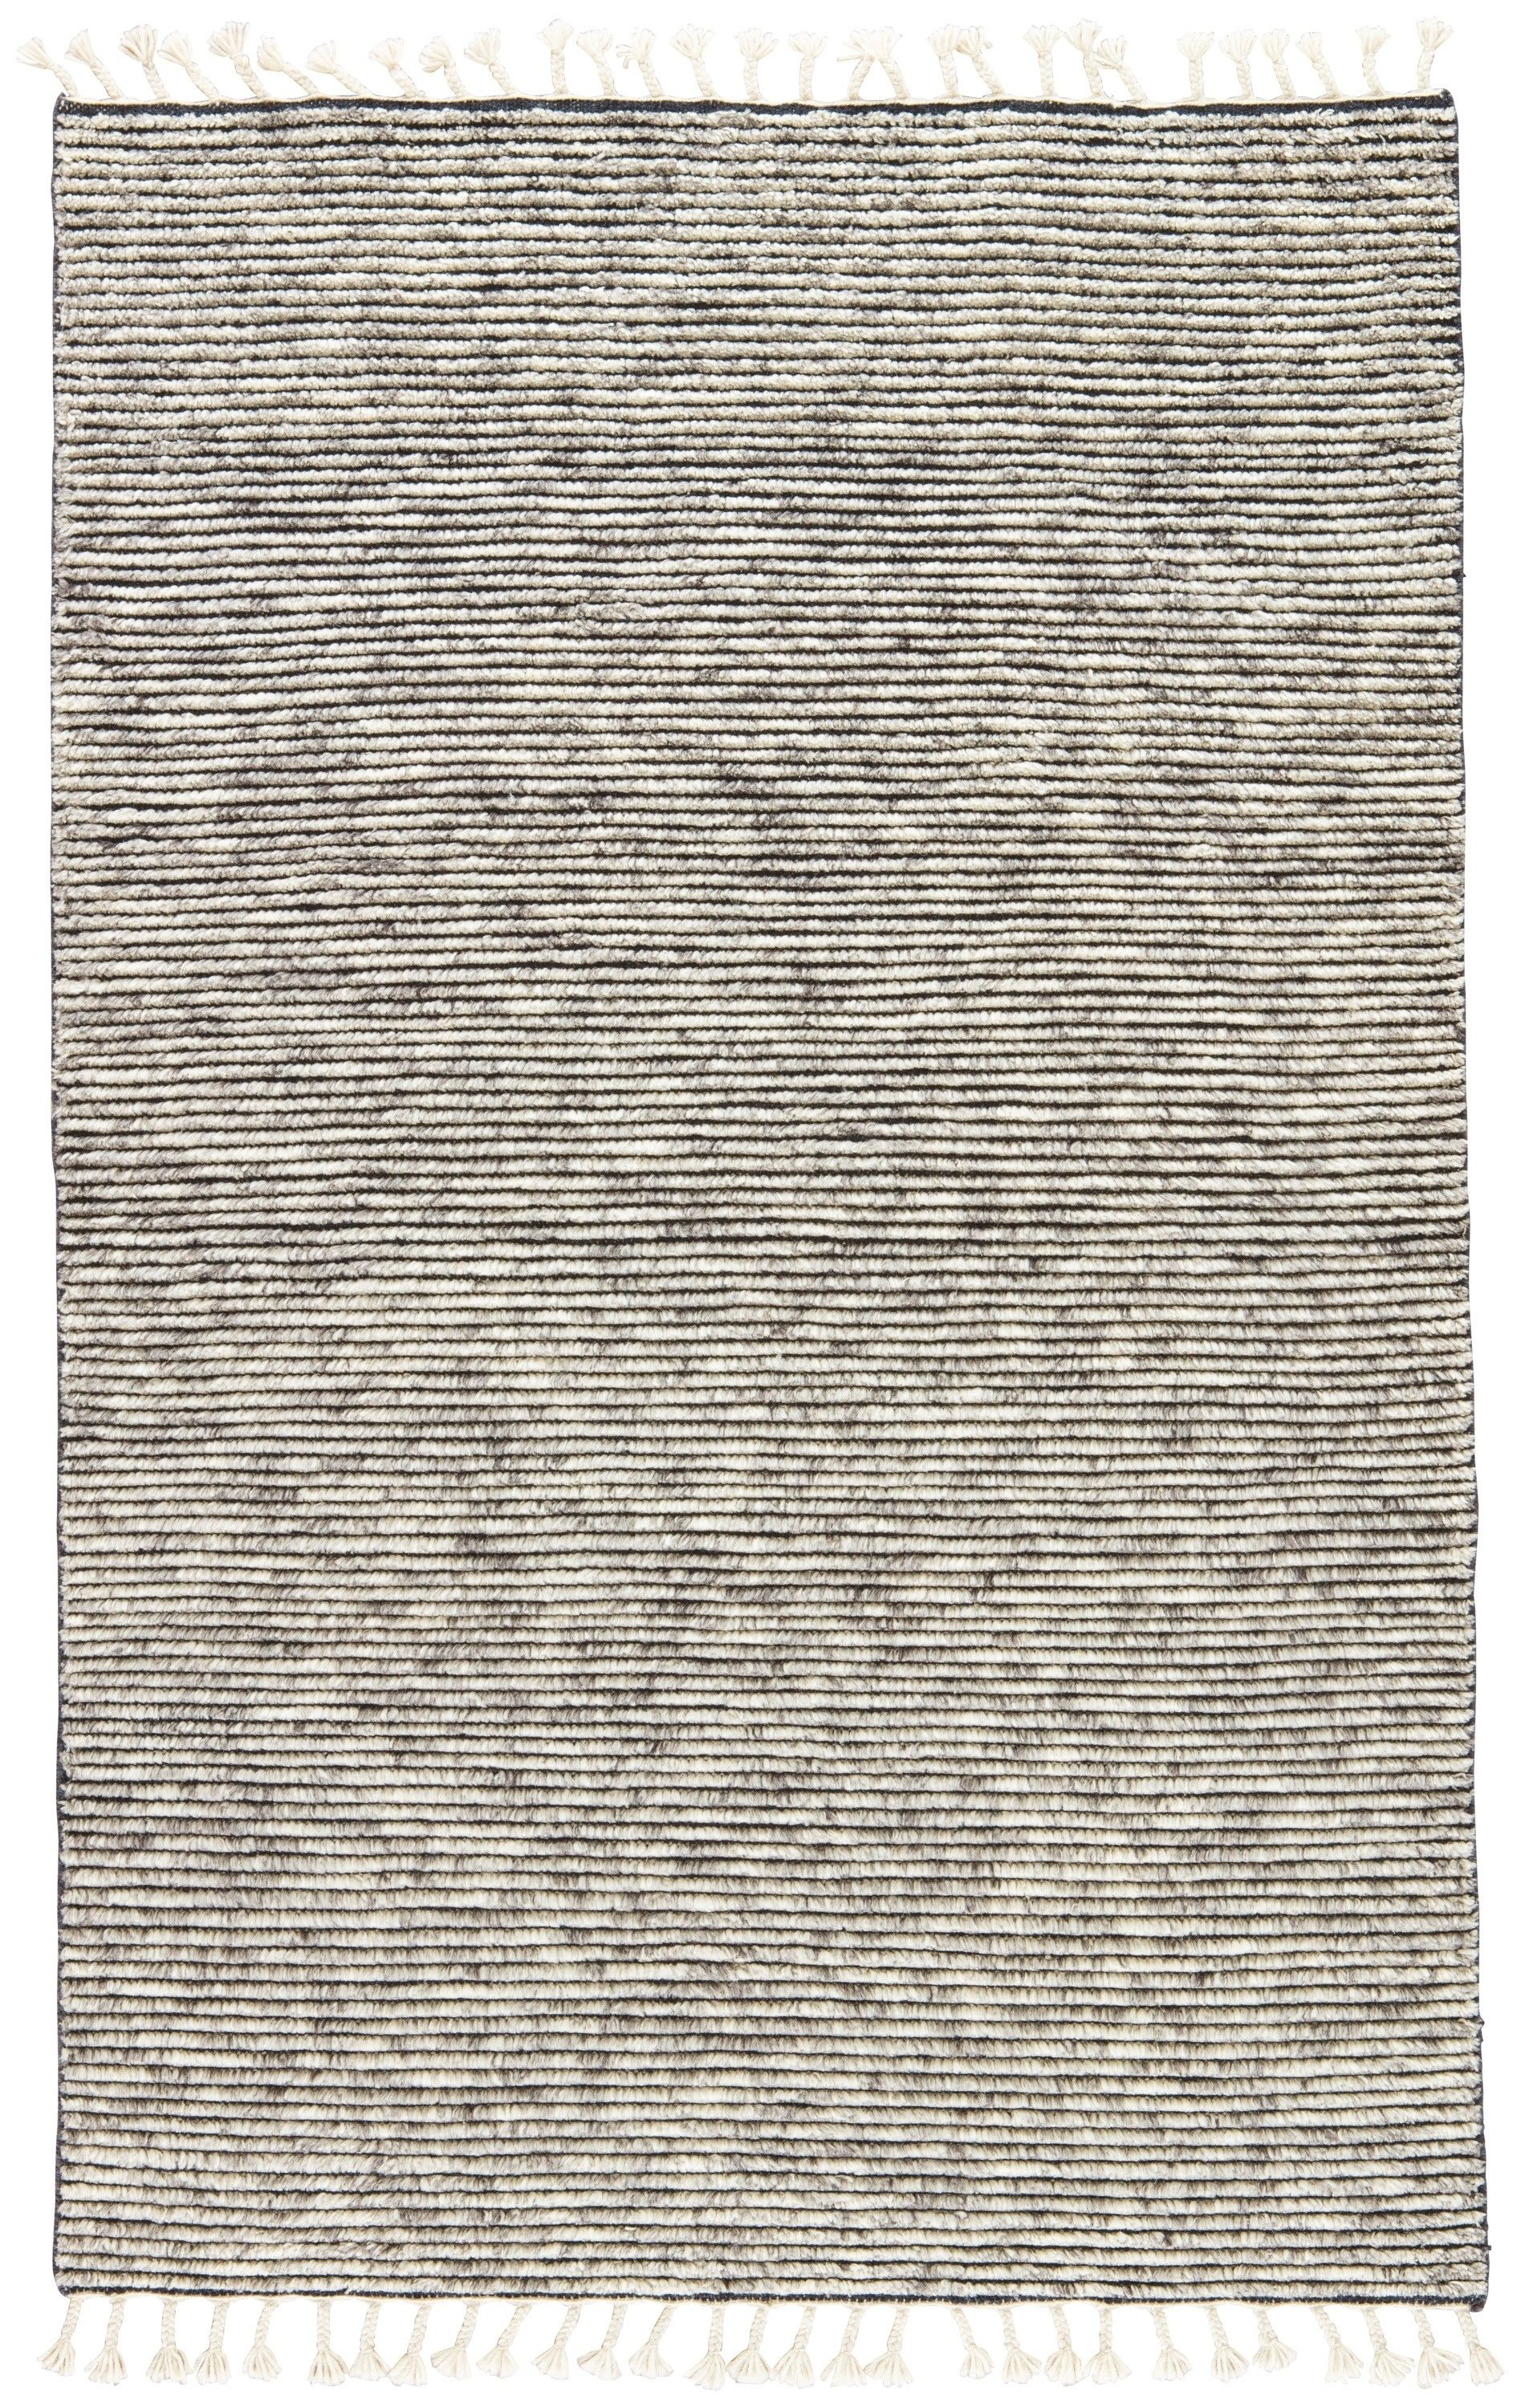 Edison Rug, Light Gray is part of Living Room Rug Lights - The Edison Rug is great for its texture and versatility  We love it in a living room as a neutral base or a mud room for a stylish yet practical look